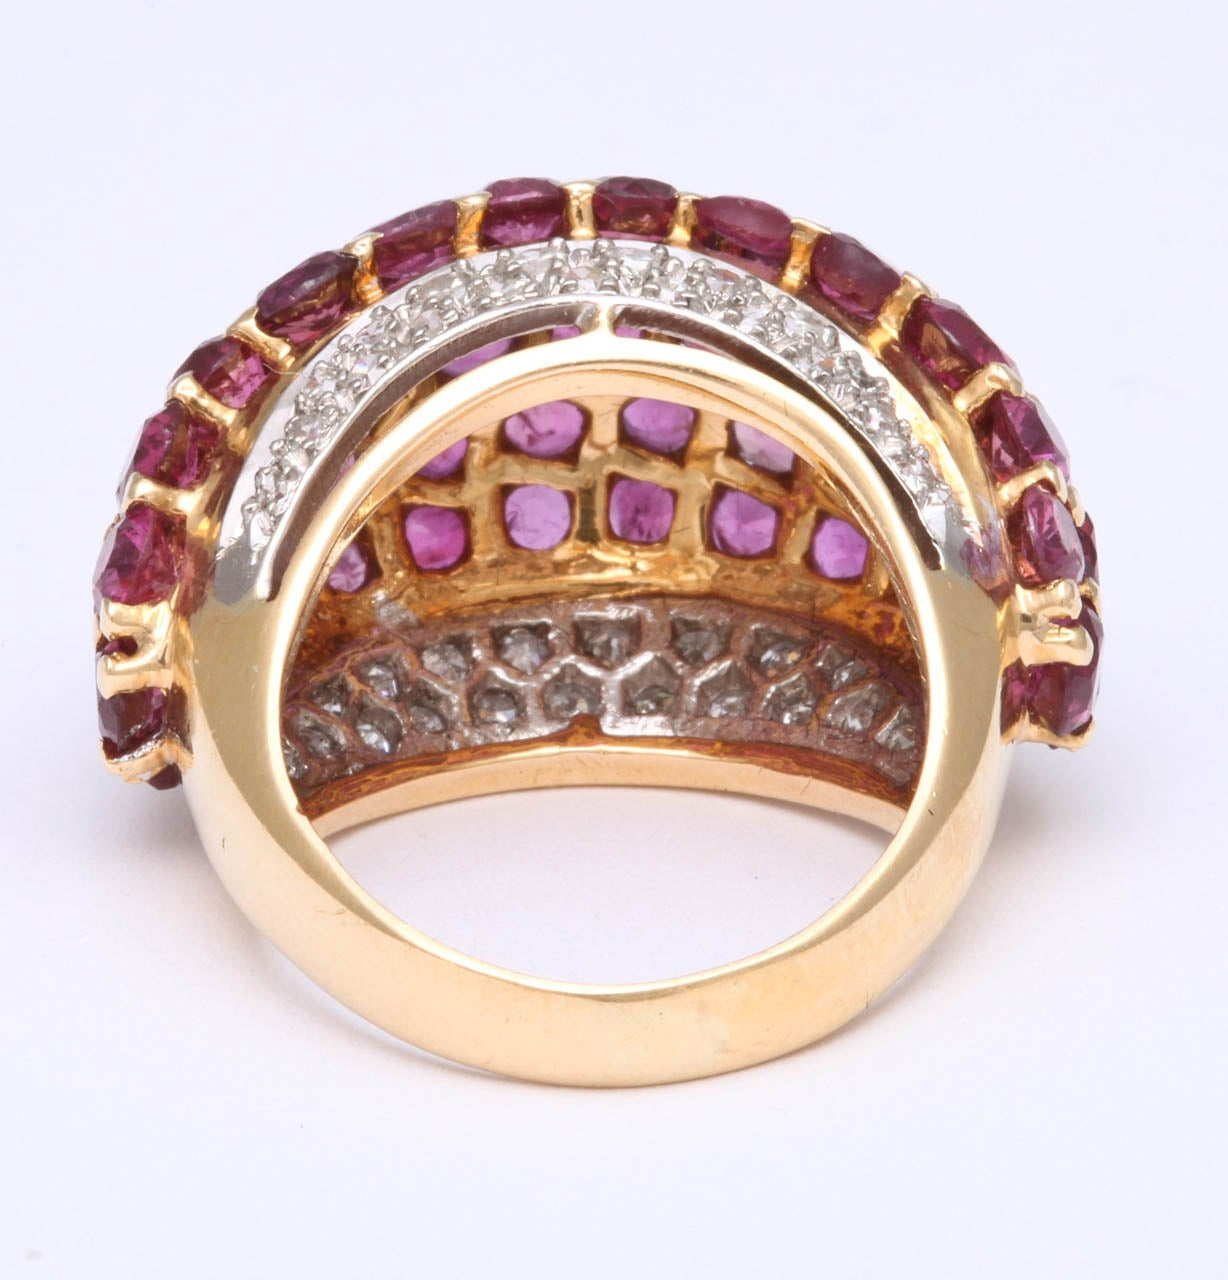 Burmese Ruby & Diamond Ring For Sale 1